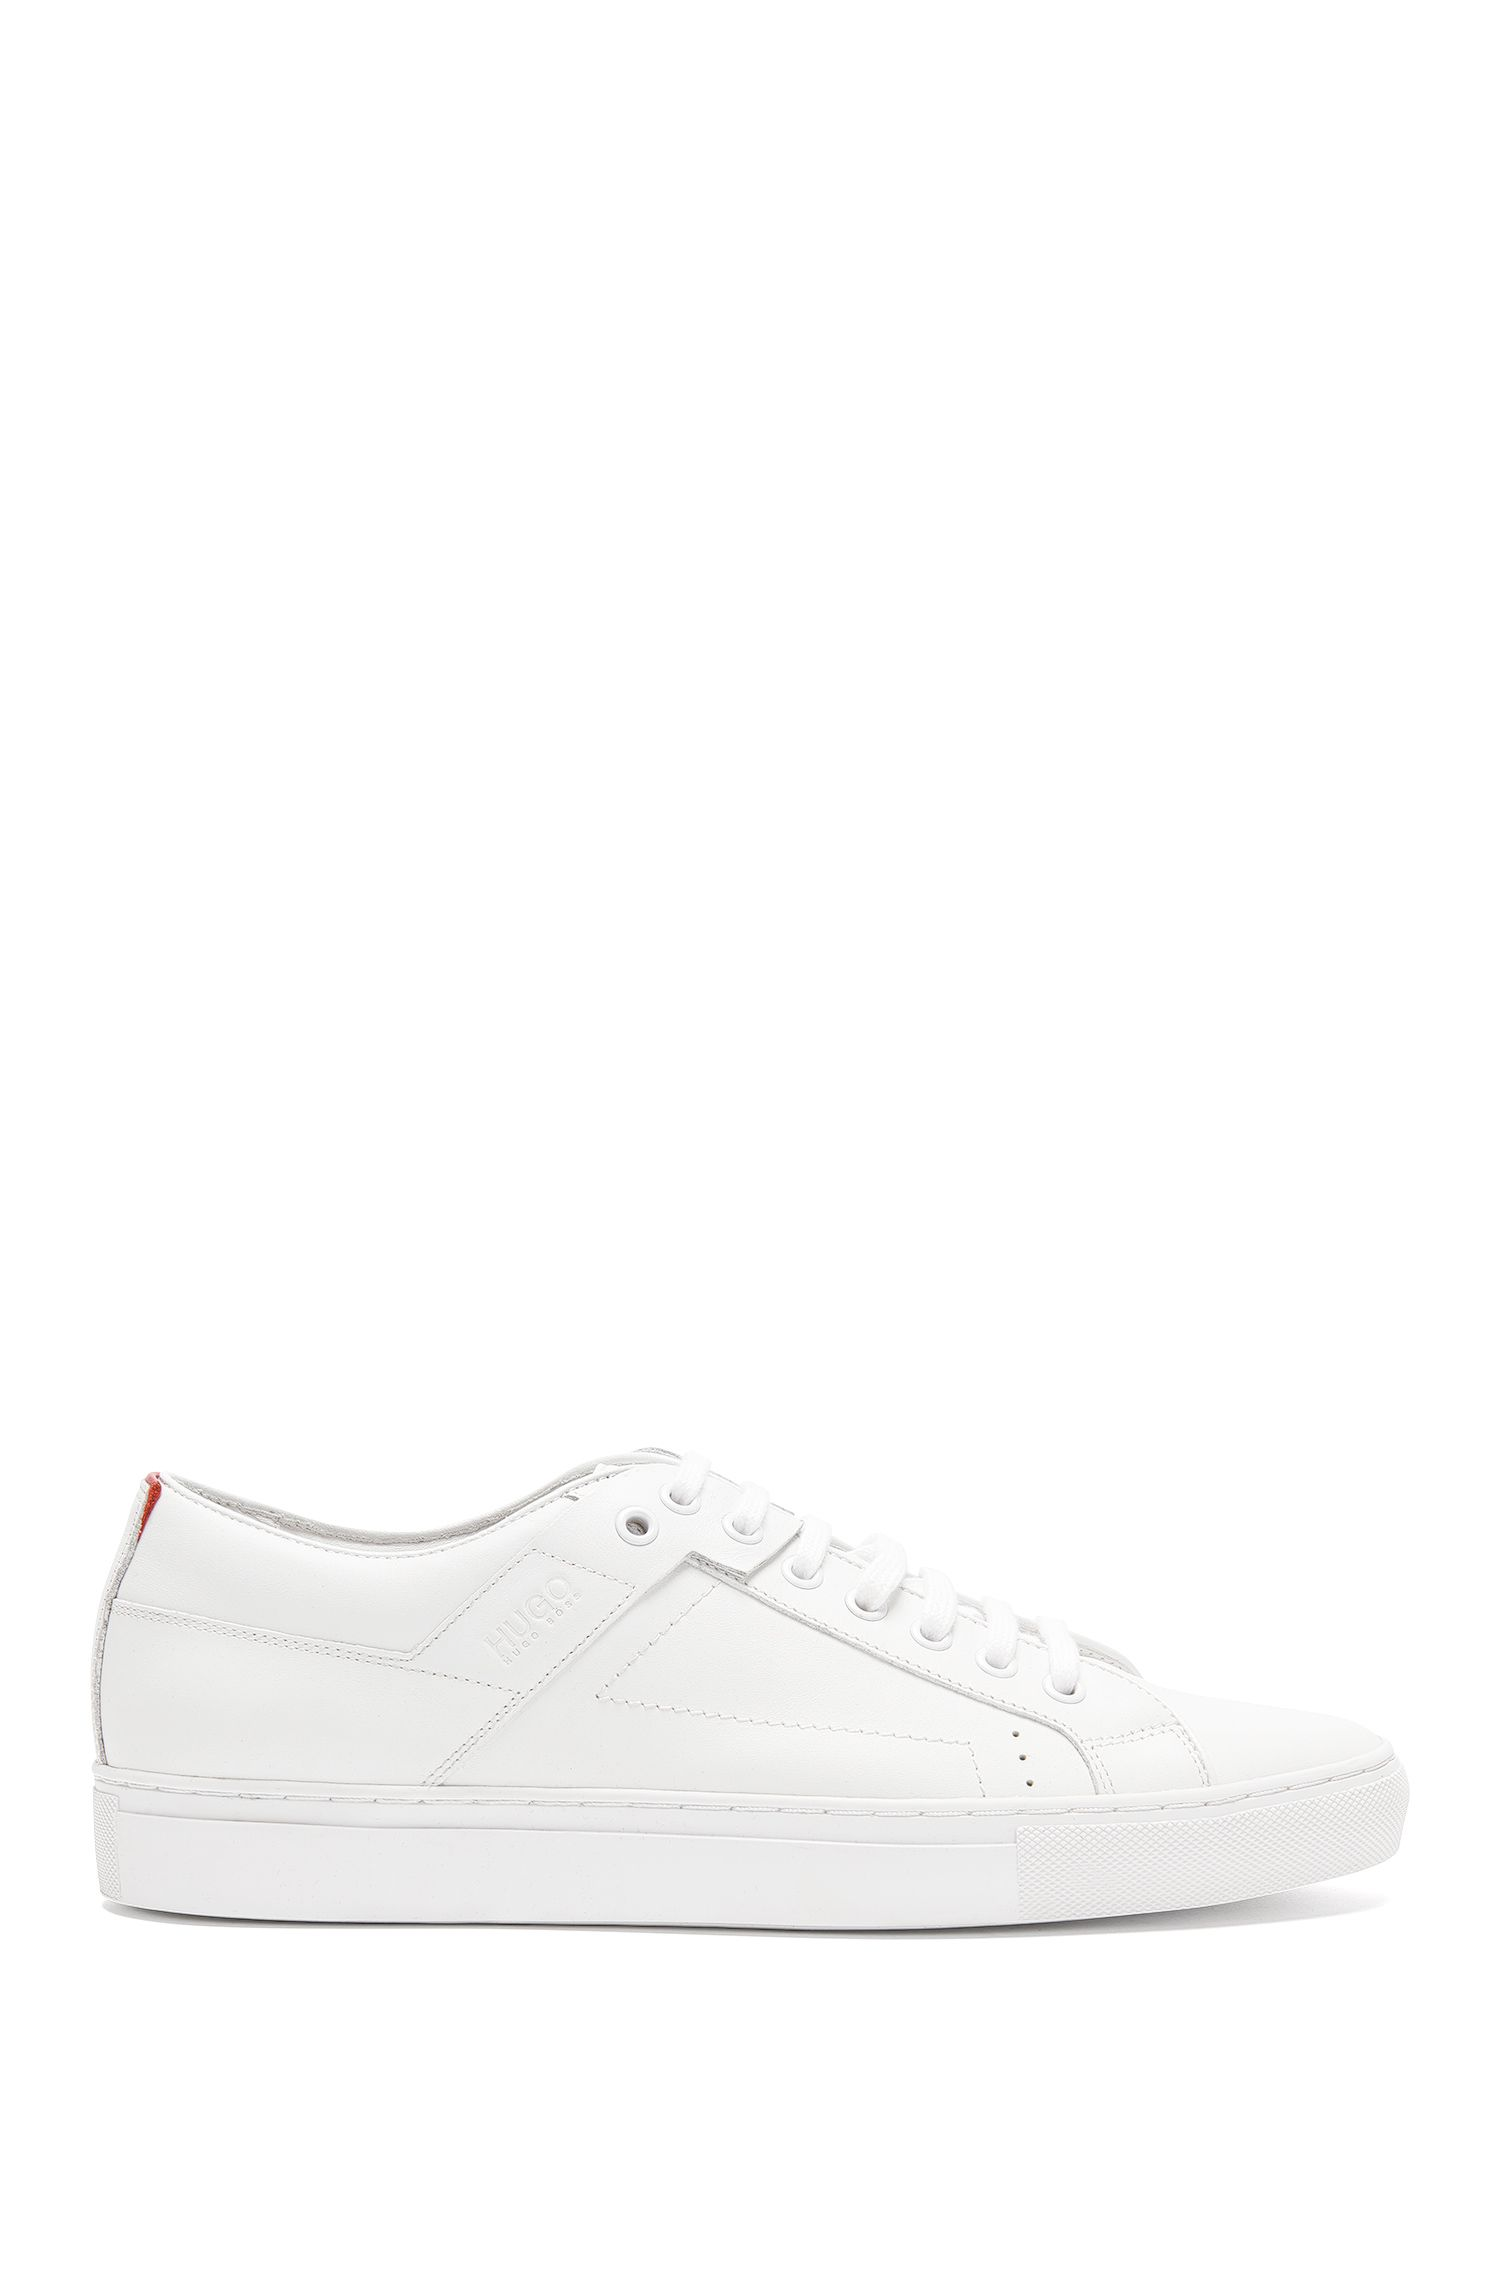 Lace-up trainers in smooth nappa leather